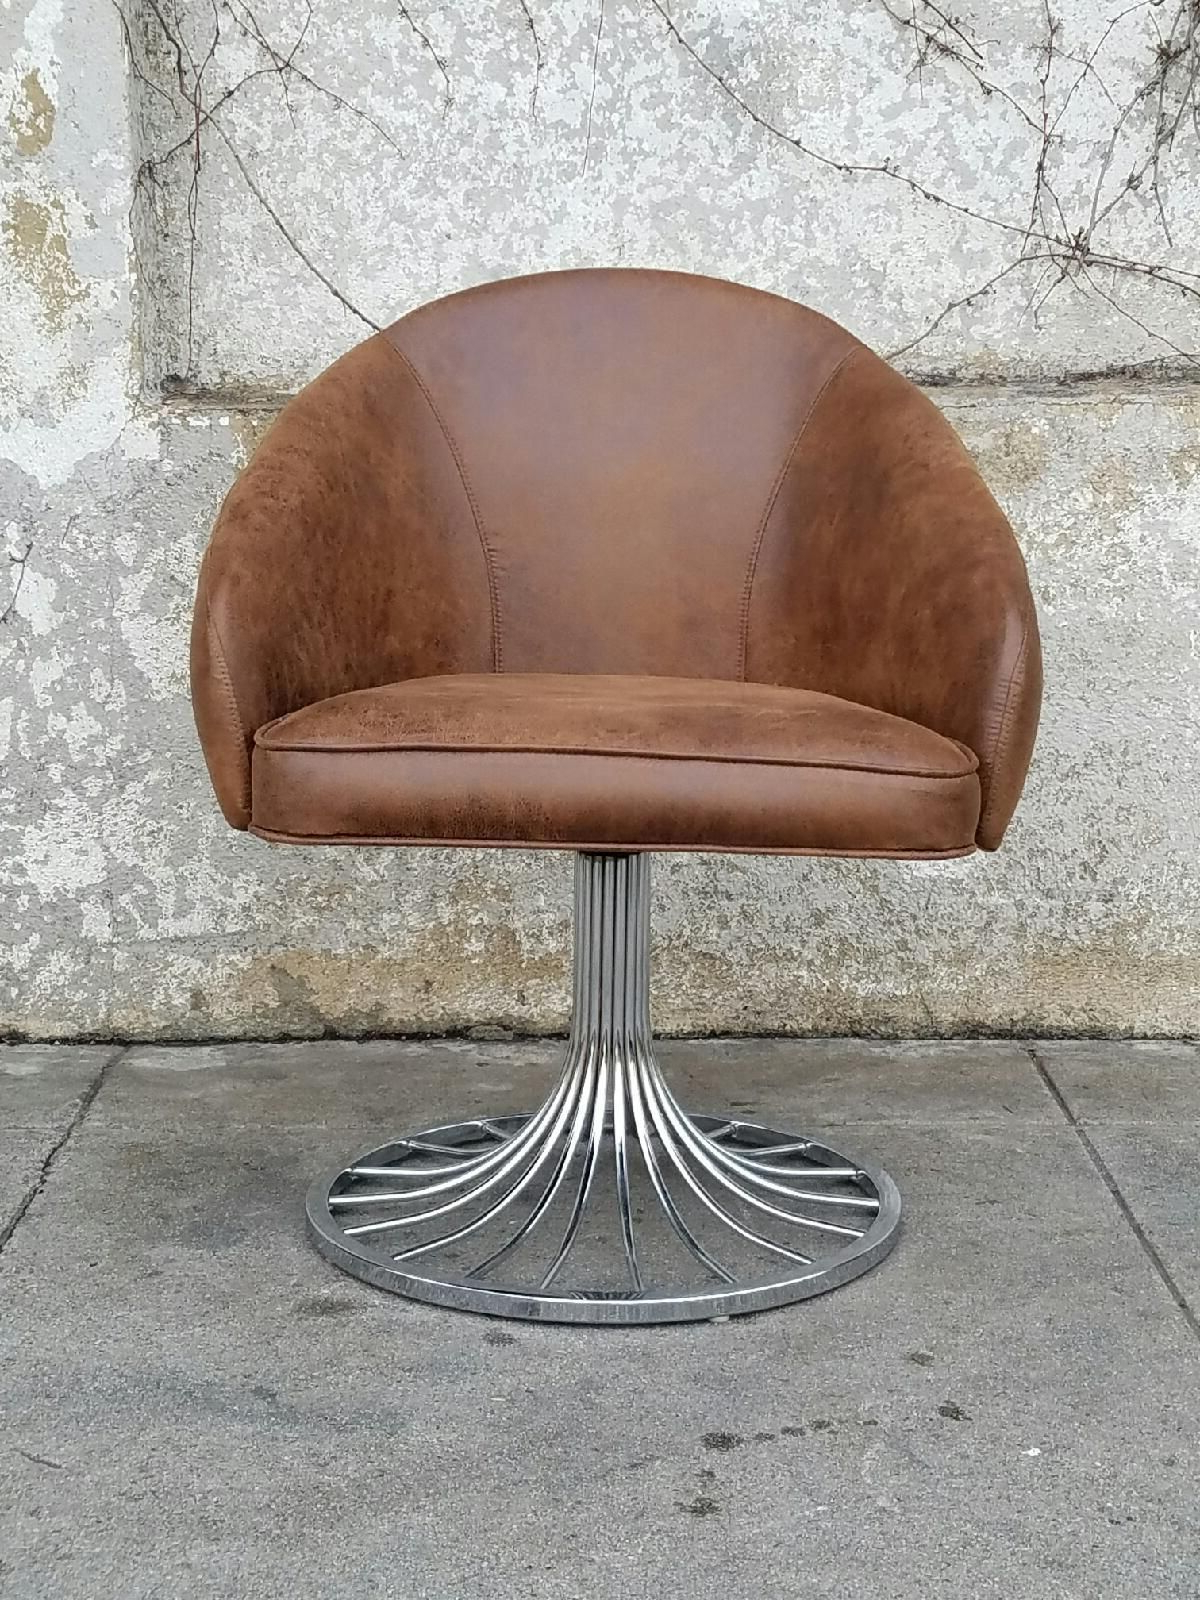 Most Popular Faux Distressed Leather Vintage Swivel Chair In Tobacco Brown Pertaining To Swivel Tobacco Leather Chairs (View 11 of 20)